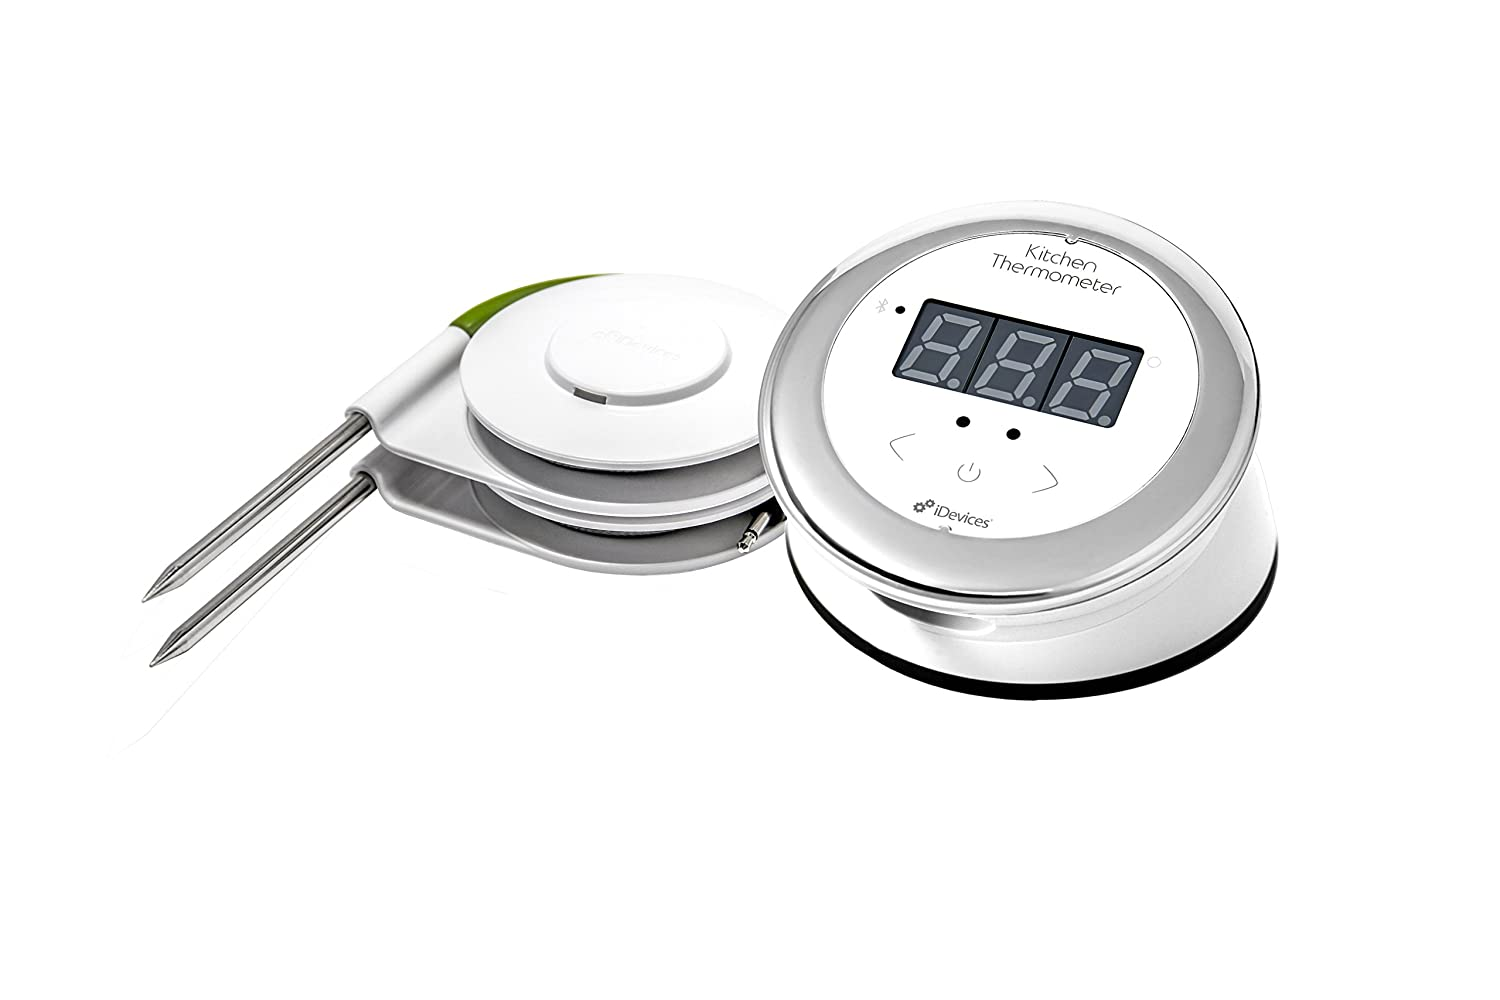 Amazon.com: iDevices Kitchen Thermometer: Kitchen & Dining